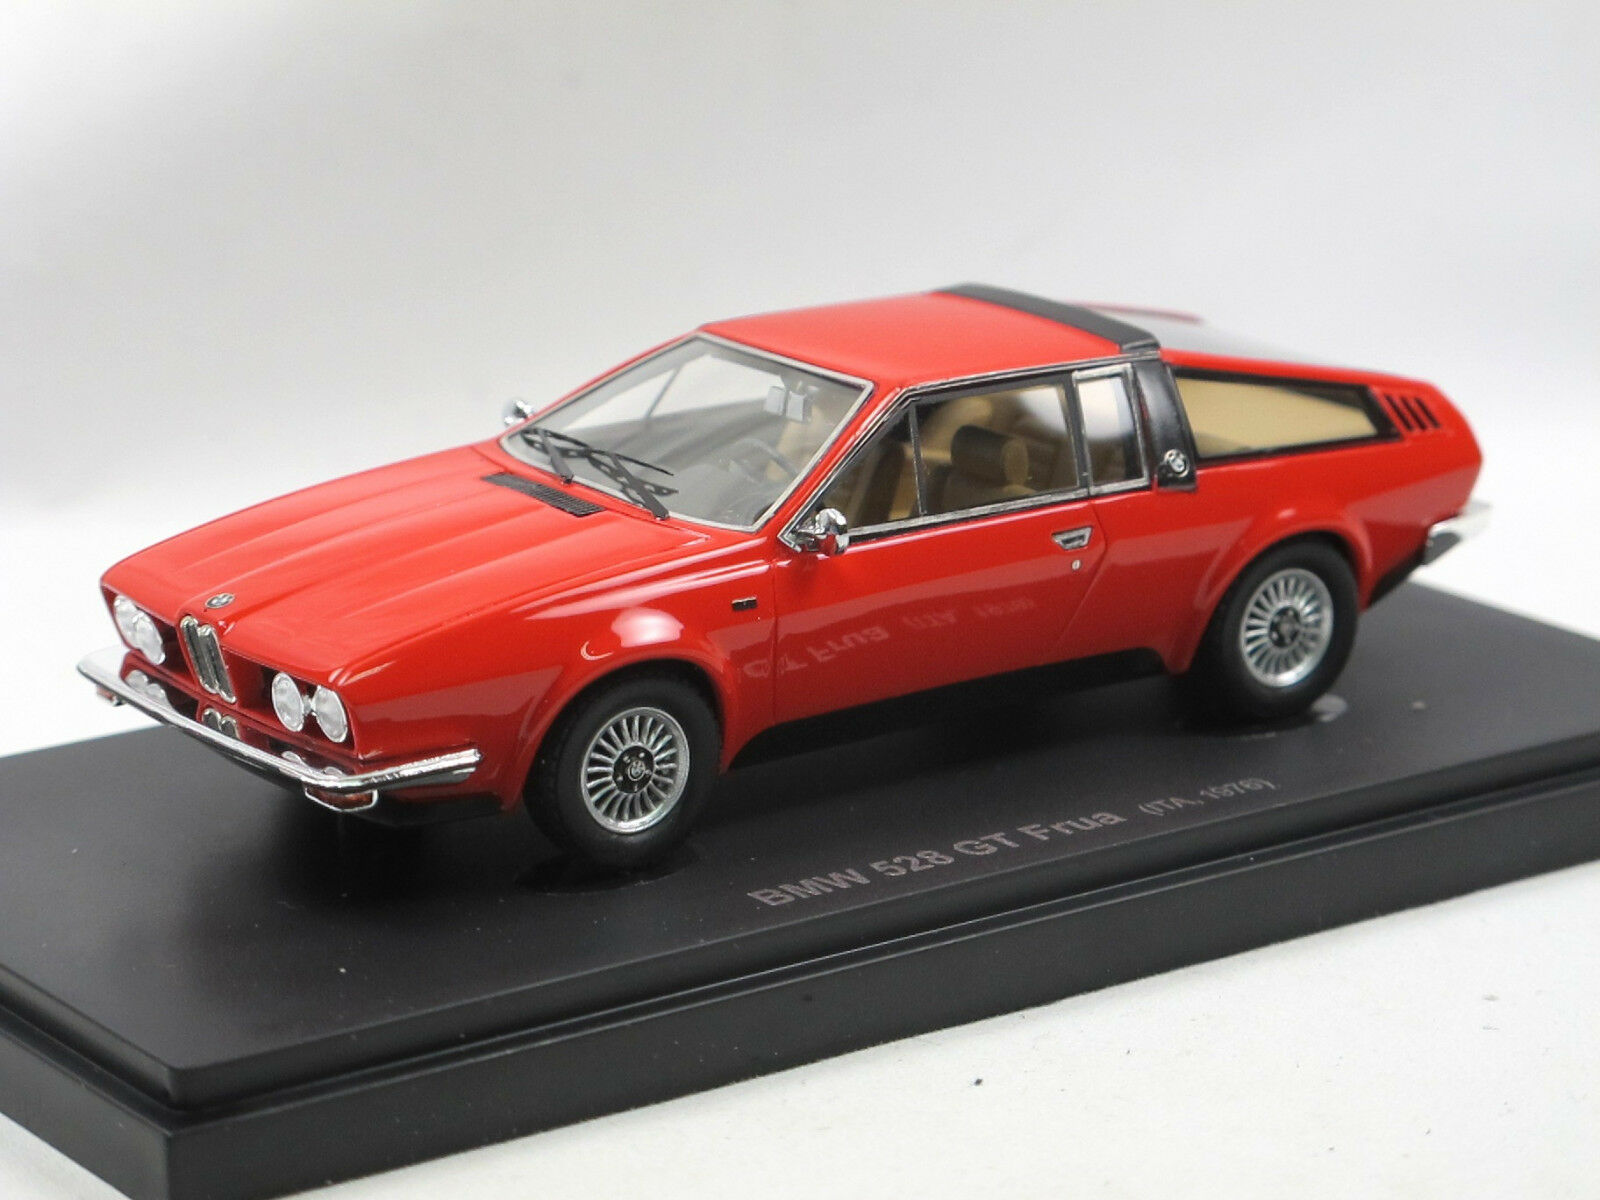 Avenue 43 autocult 60014 - 1976 BMW 528 GT Frua rojo LIMITED EDITION 1 43